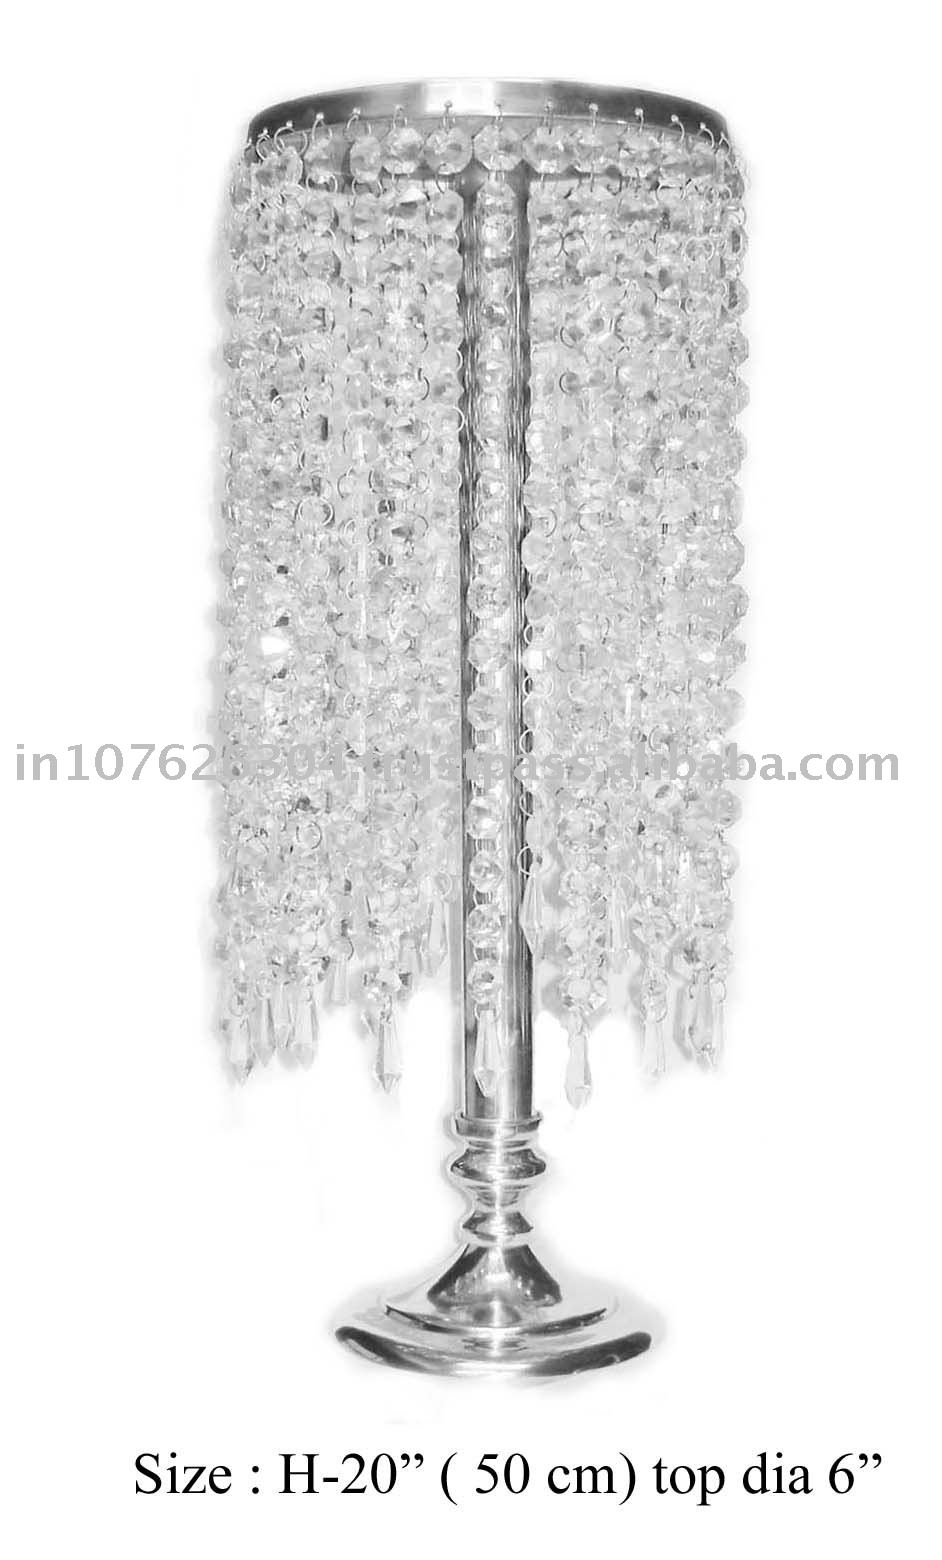 12 inspirations of crystal table chandeliers chandelier chandelier table lamp lamps ideas designwalls crystal with crystal table chandeliers 3 of geotapseo Image collections